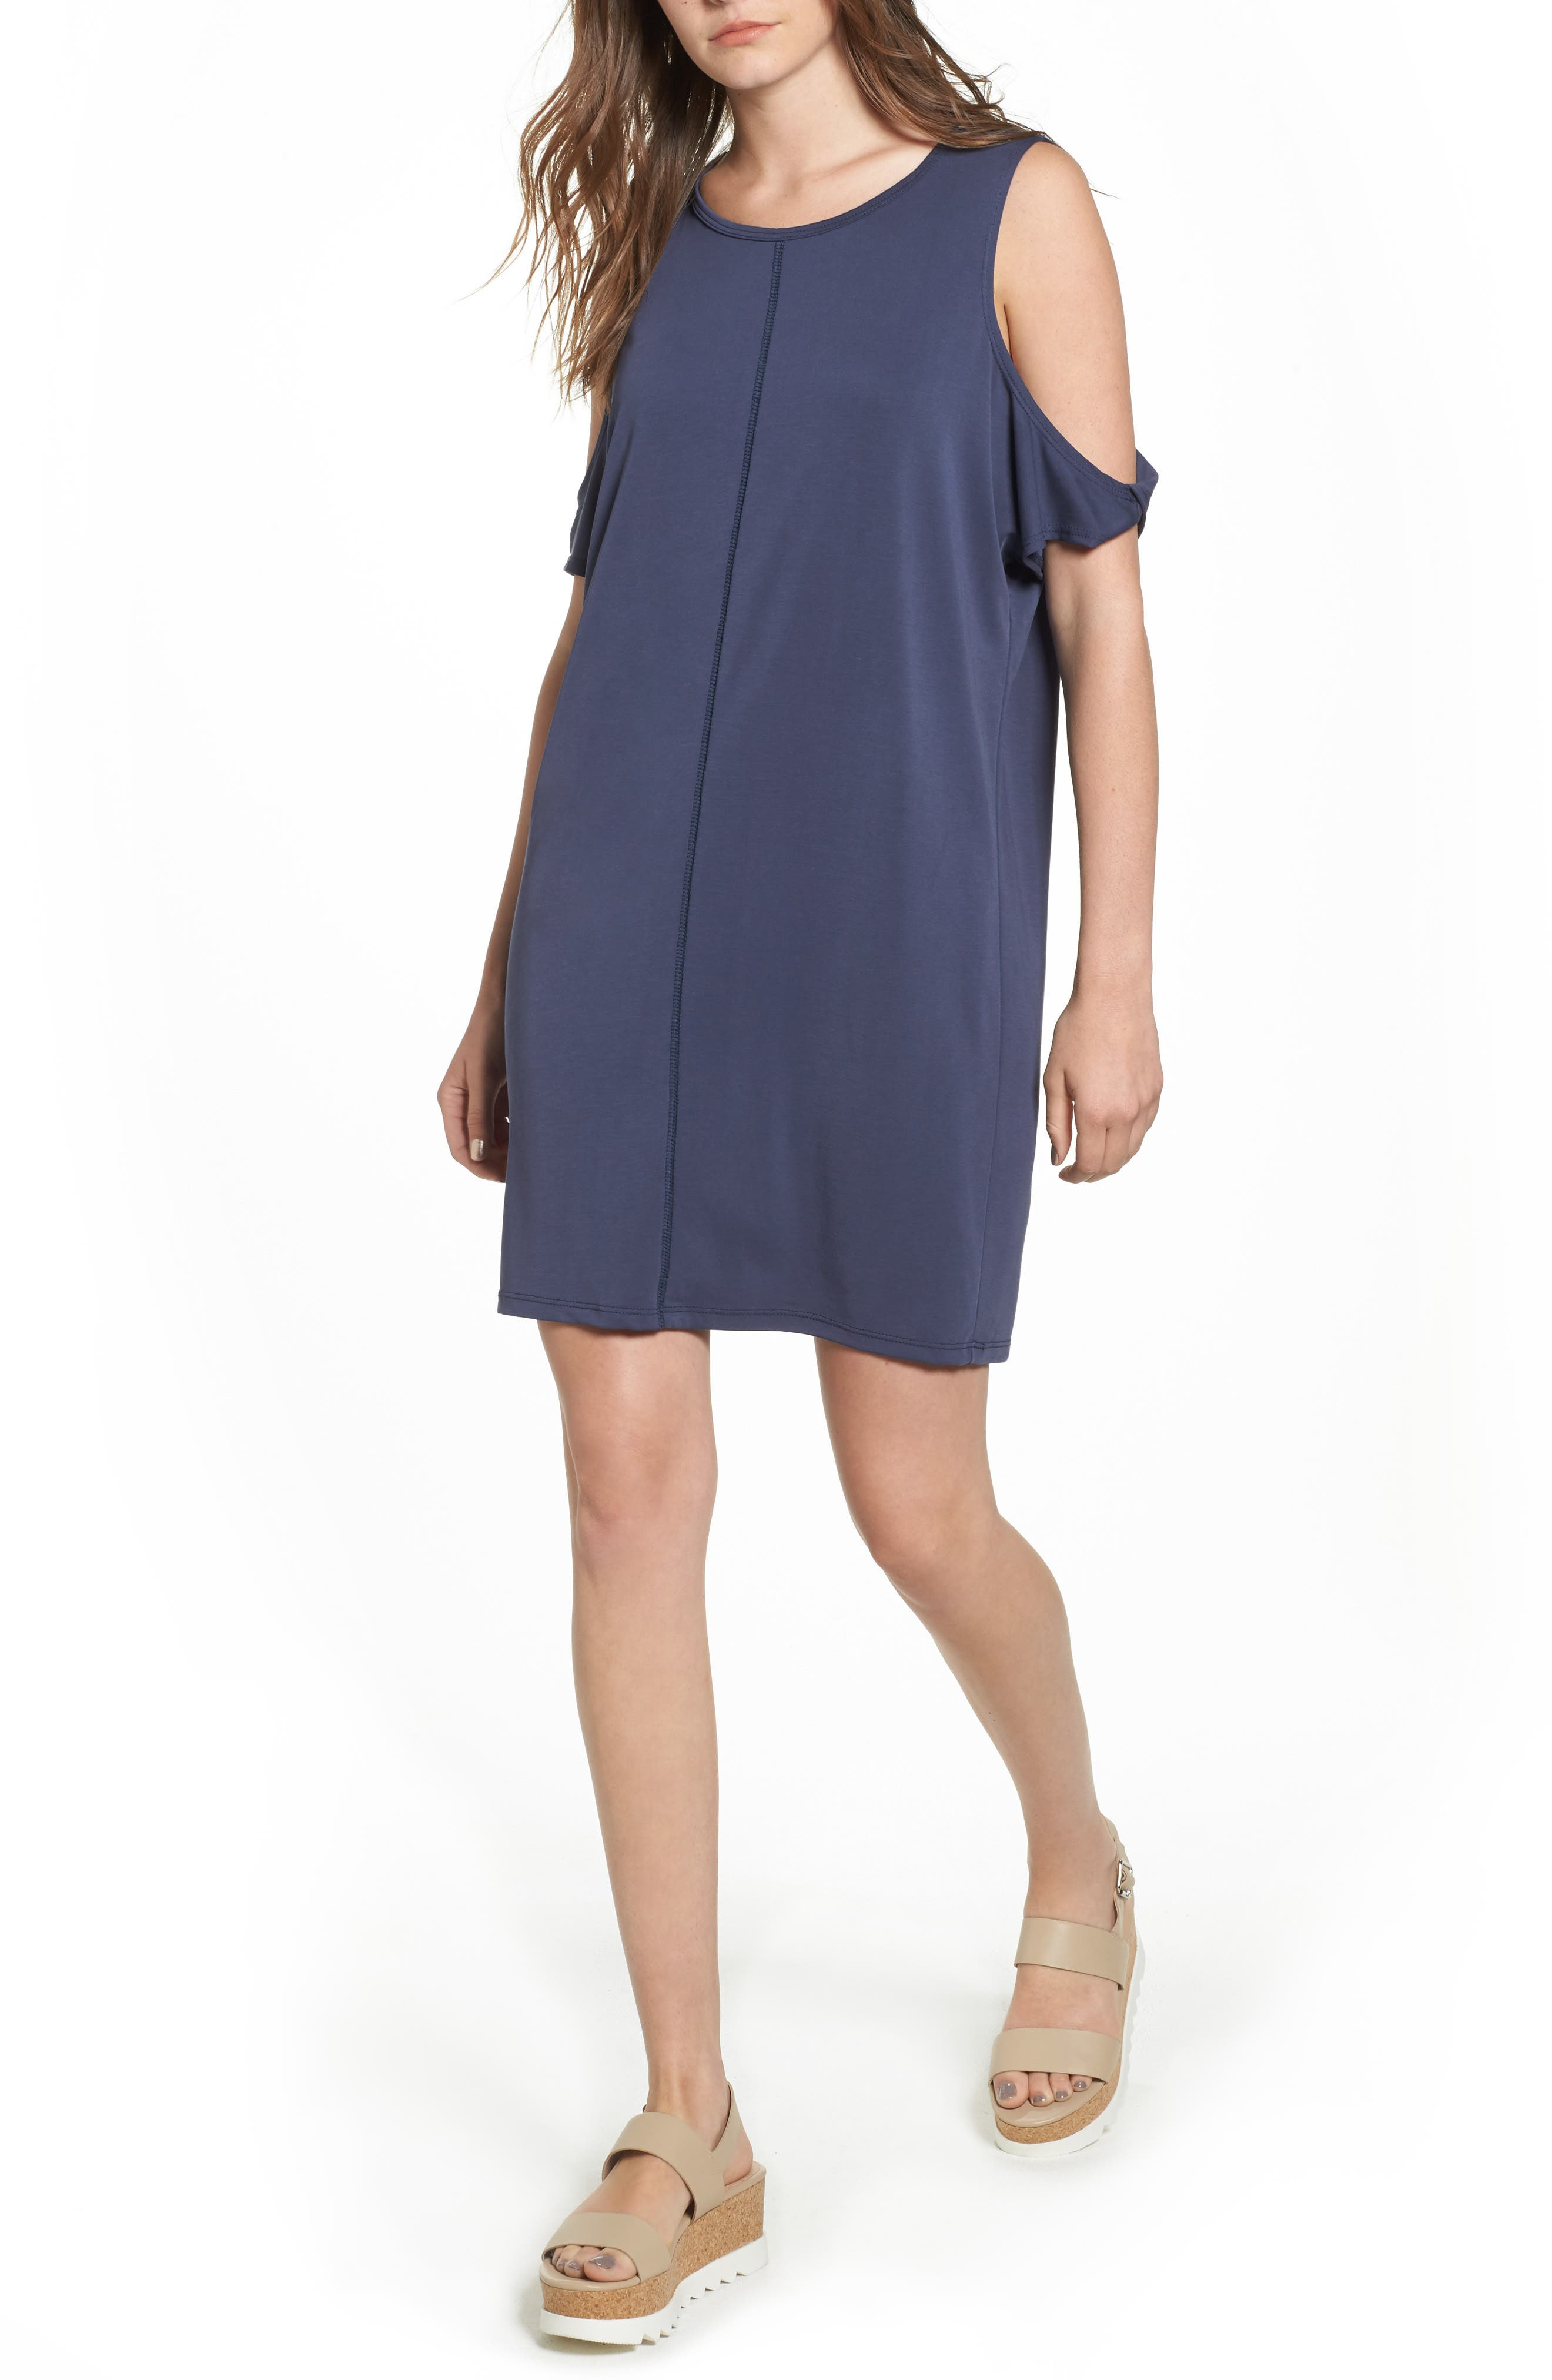 Main Image - PST by Project Social T Twisted Cold Shoulder Dress